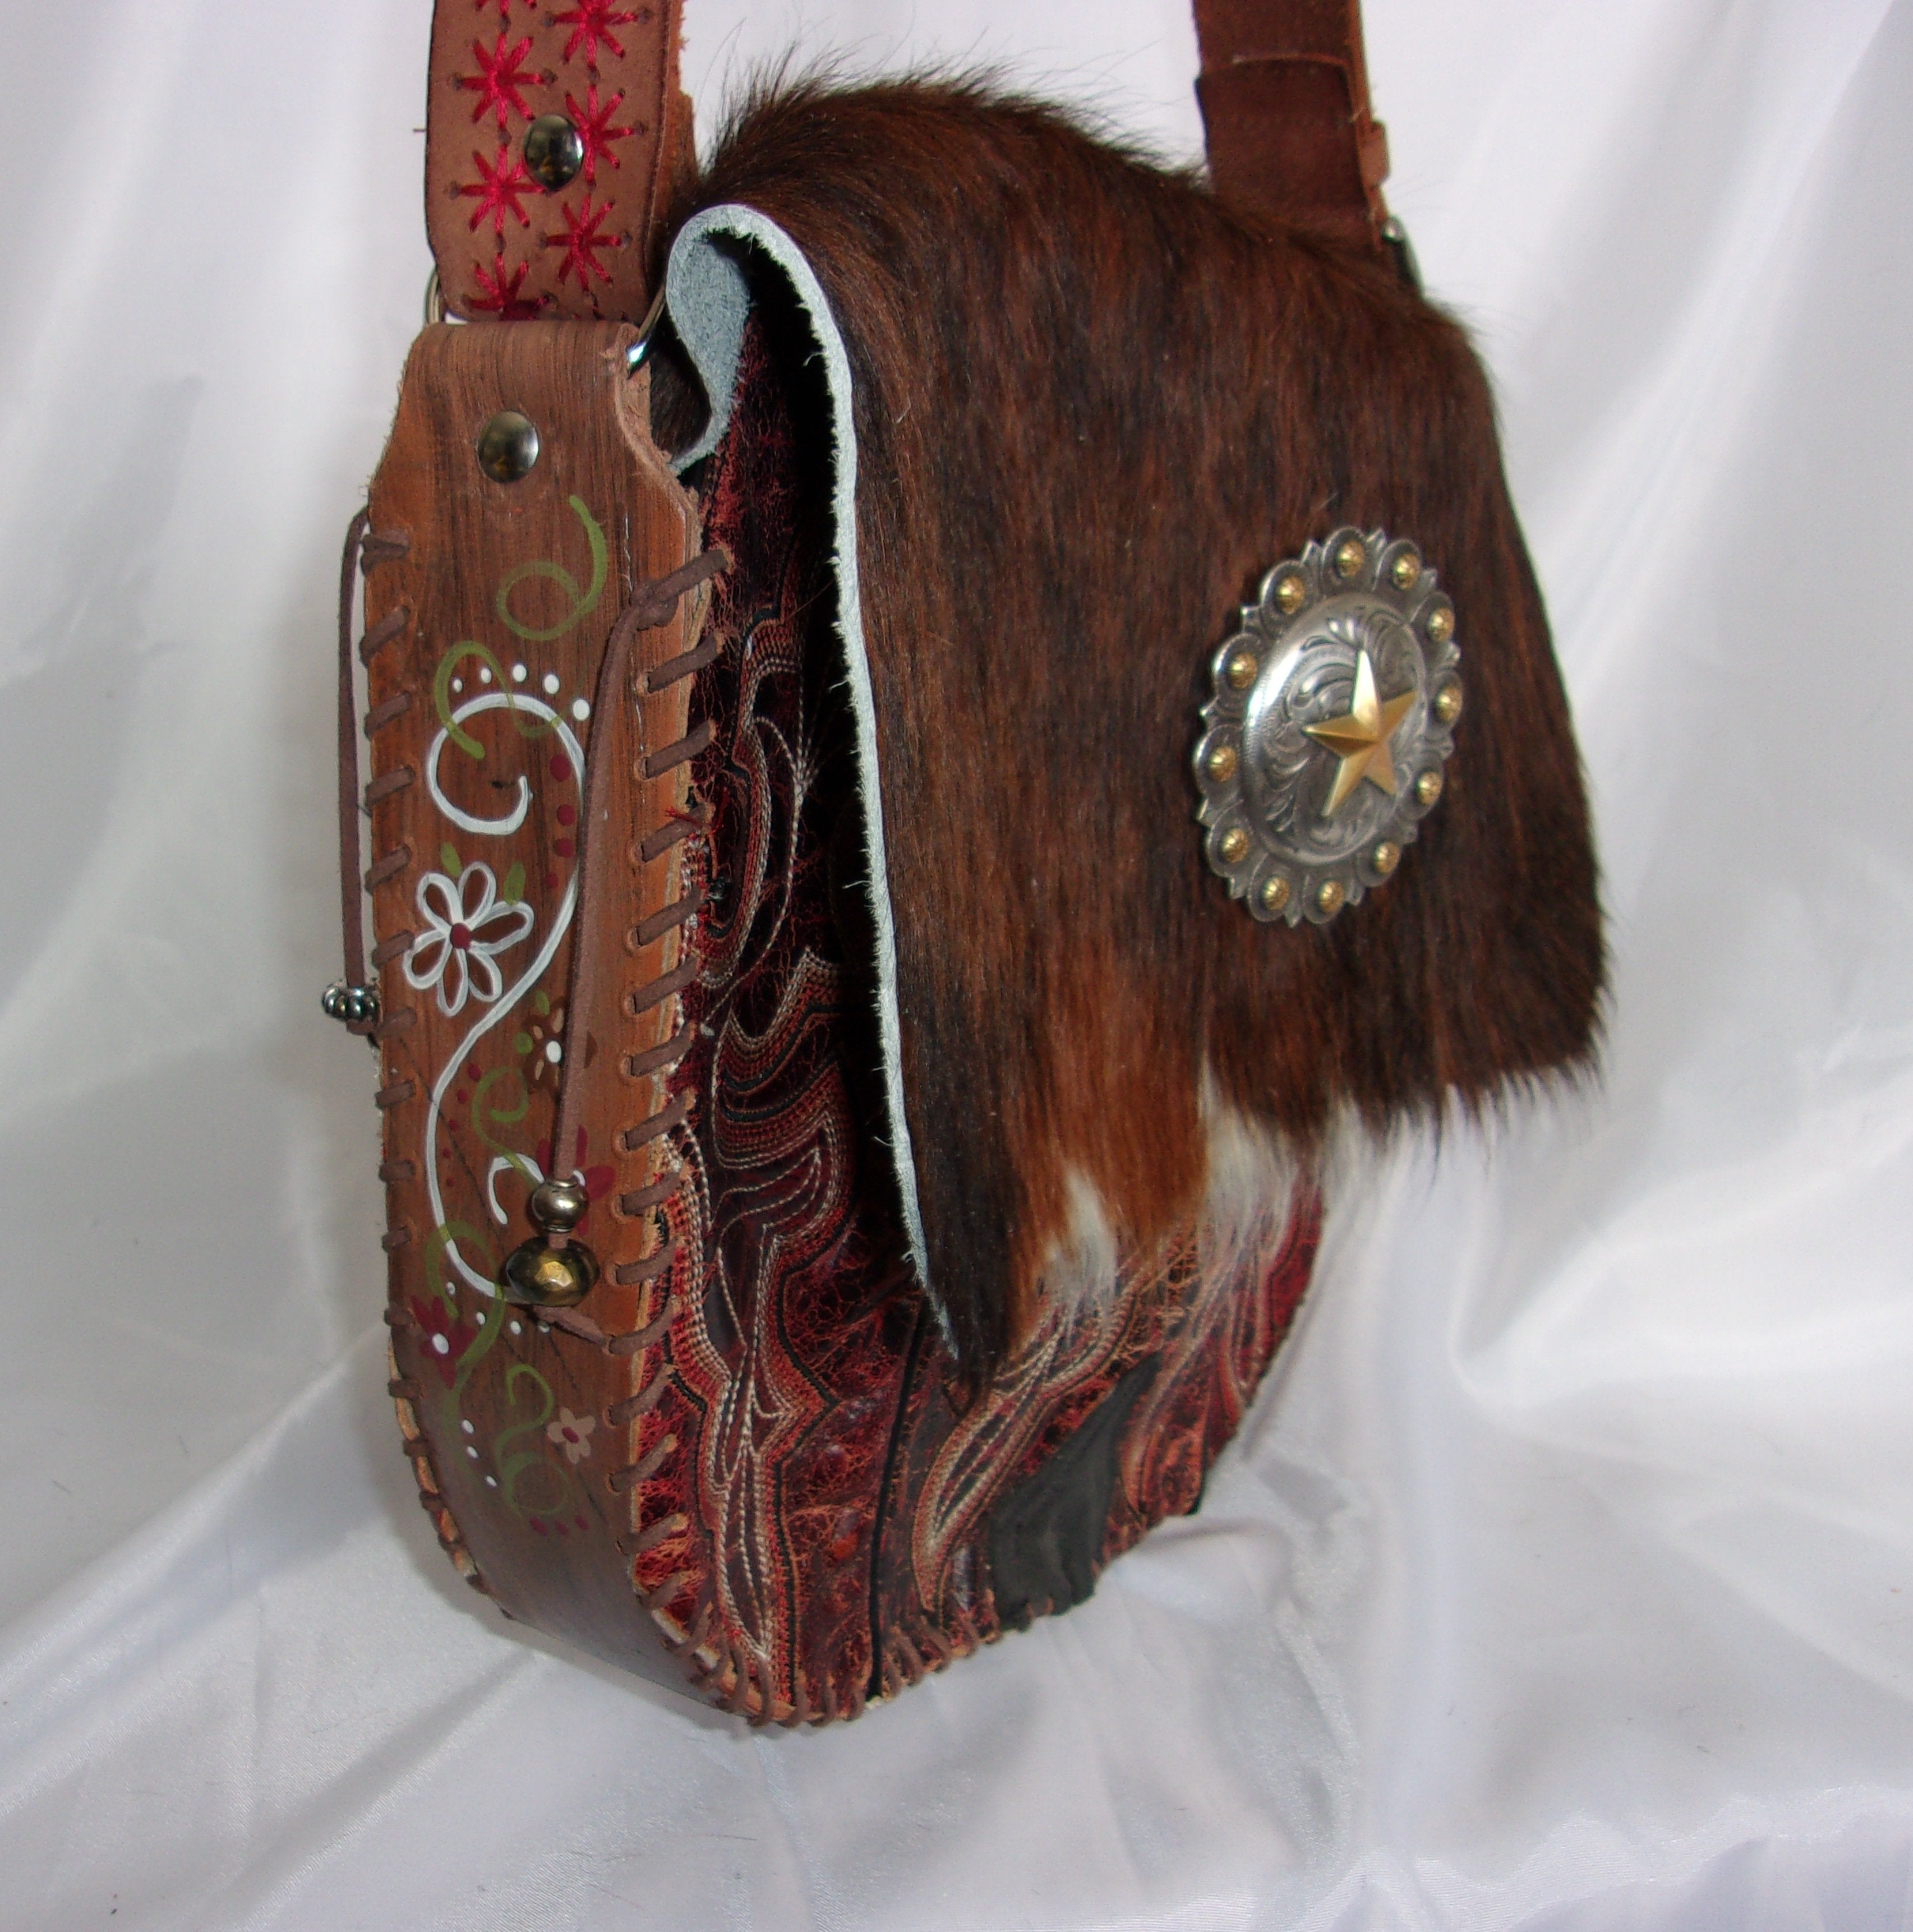 Hair-on-Hide Hand-Painted Flap Top Bag SB07 - Cowboy Boot Purses by Chris Thompson for Distinctive Western Fashion